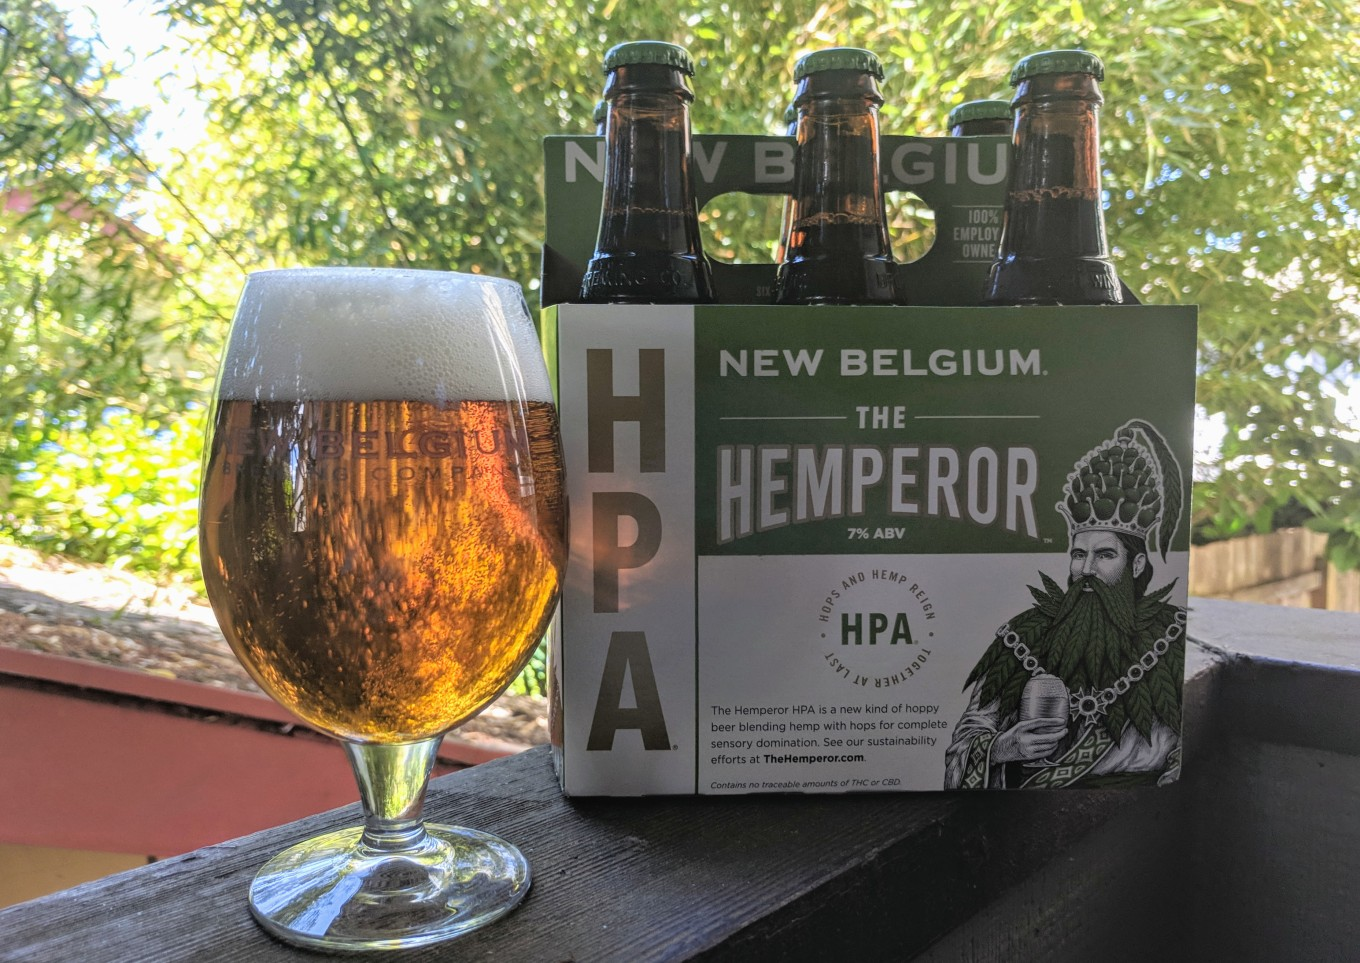 New Belgium The Hemperor HPA CBD Craft Beer